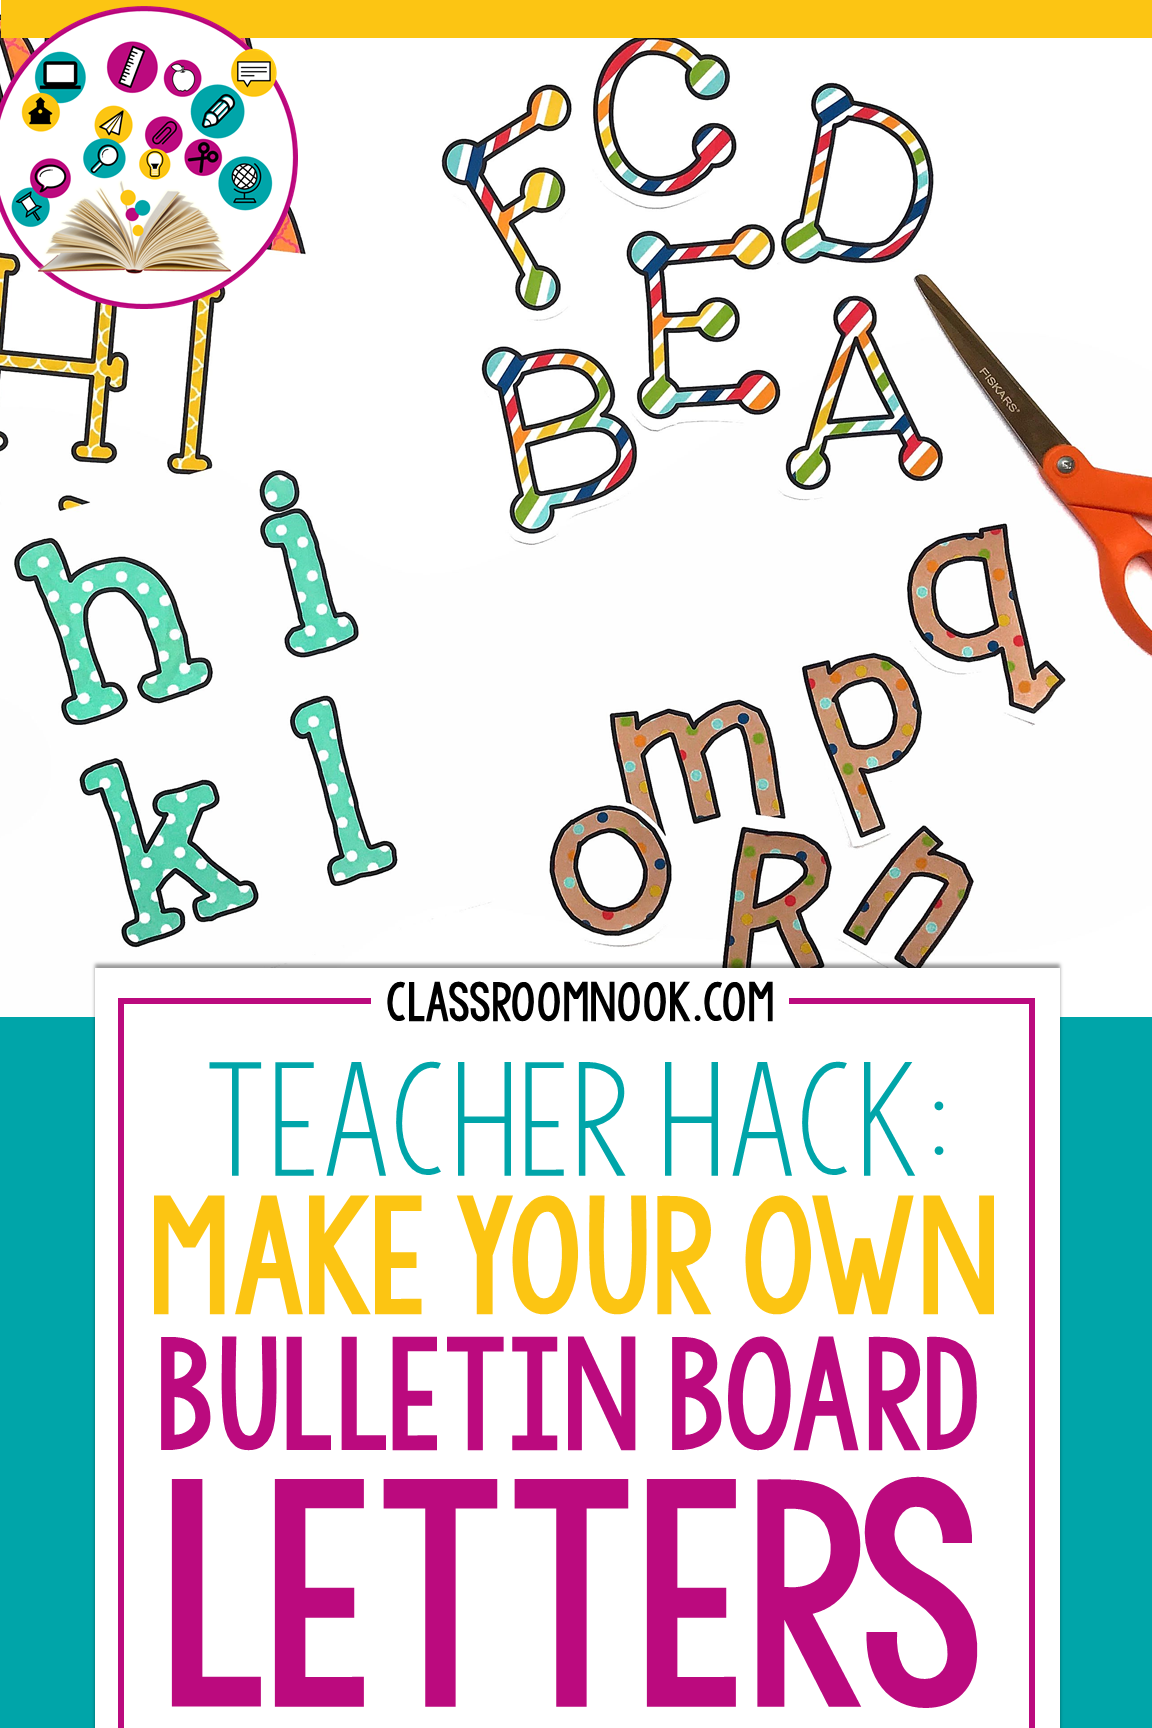 How To Make Your Own Bulletin Board Letters So Easy